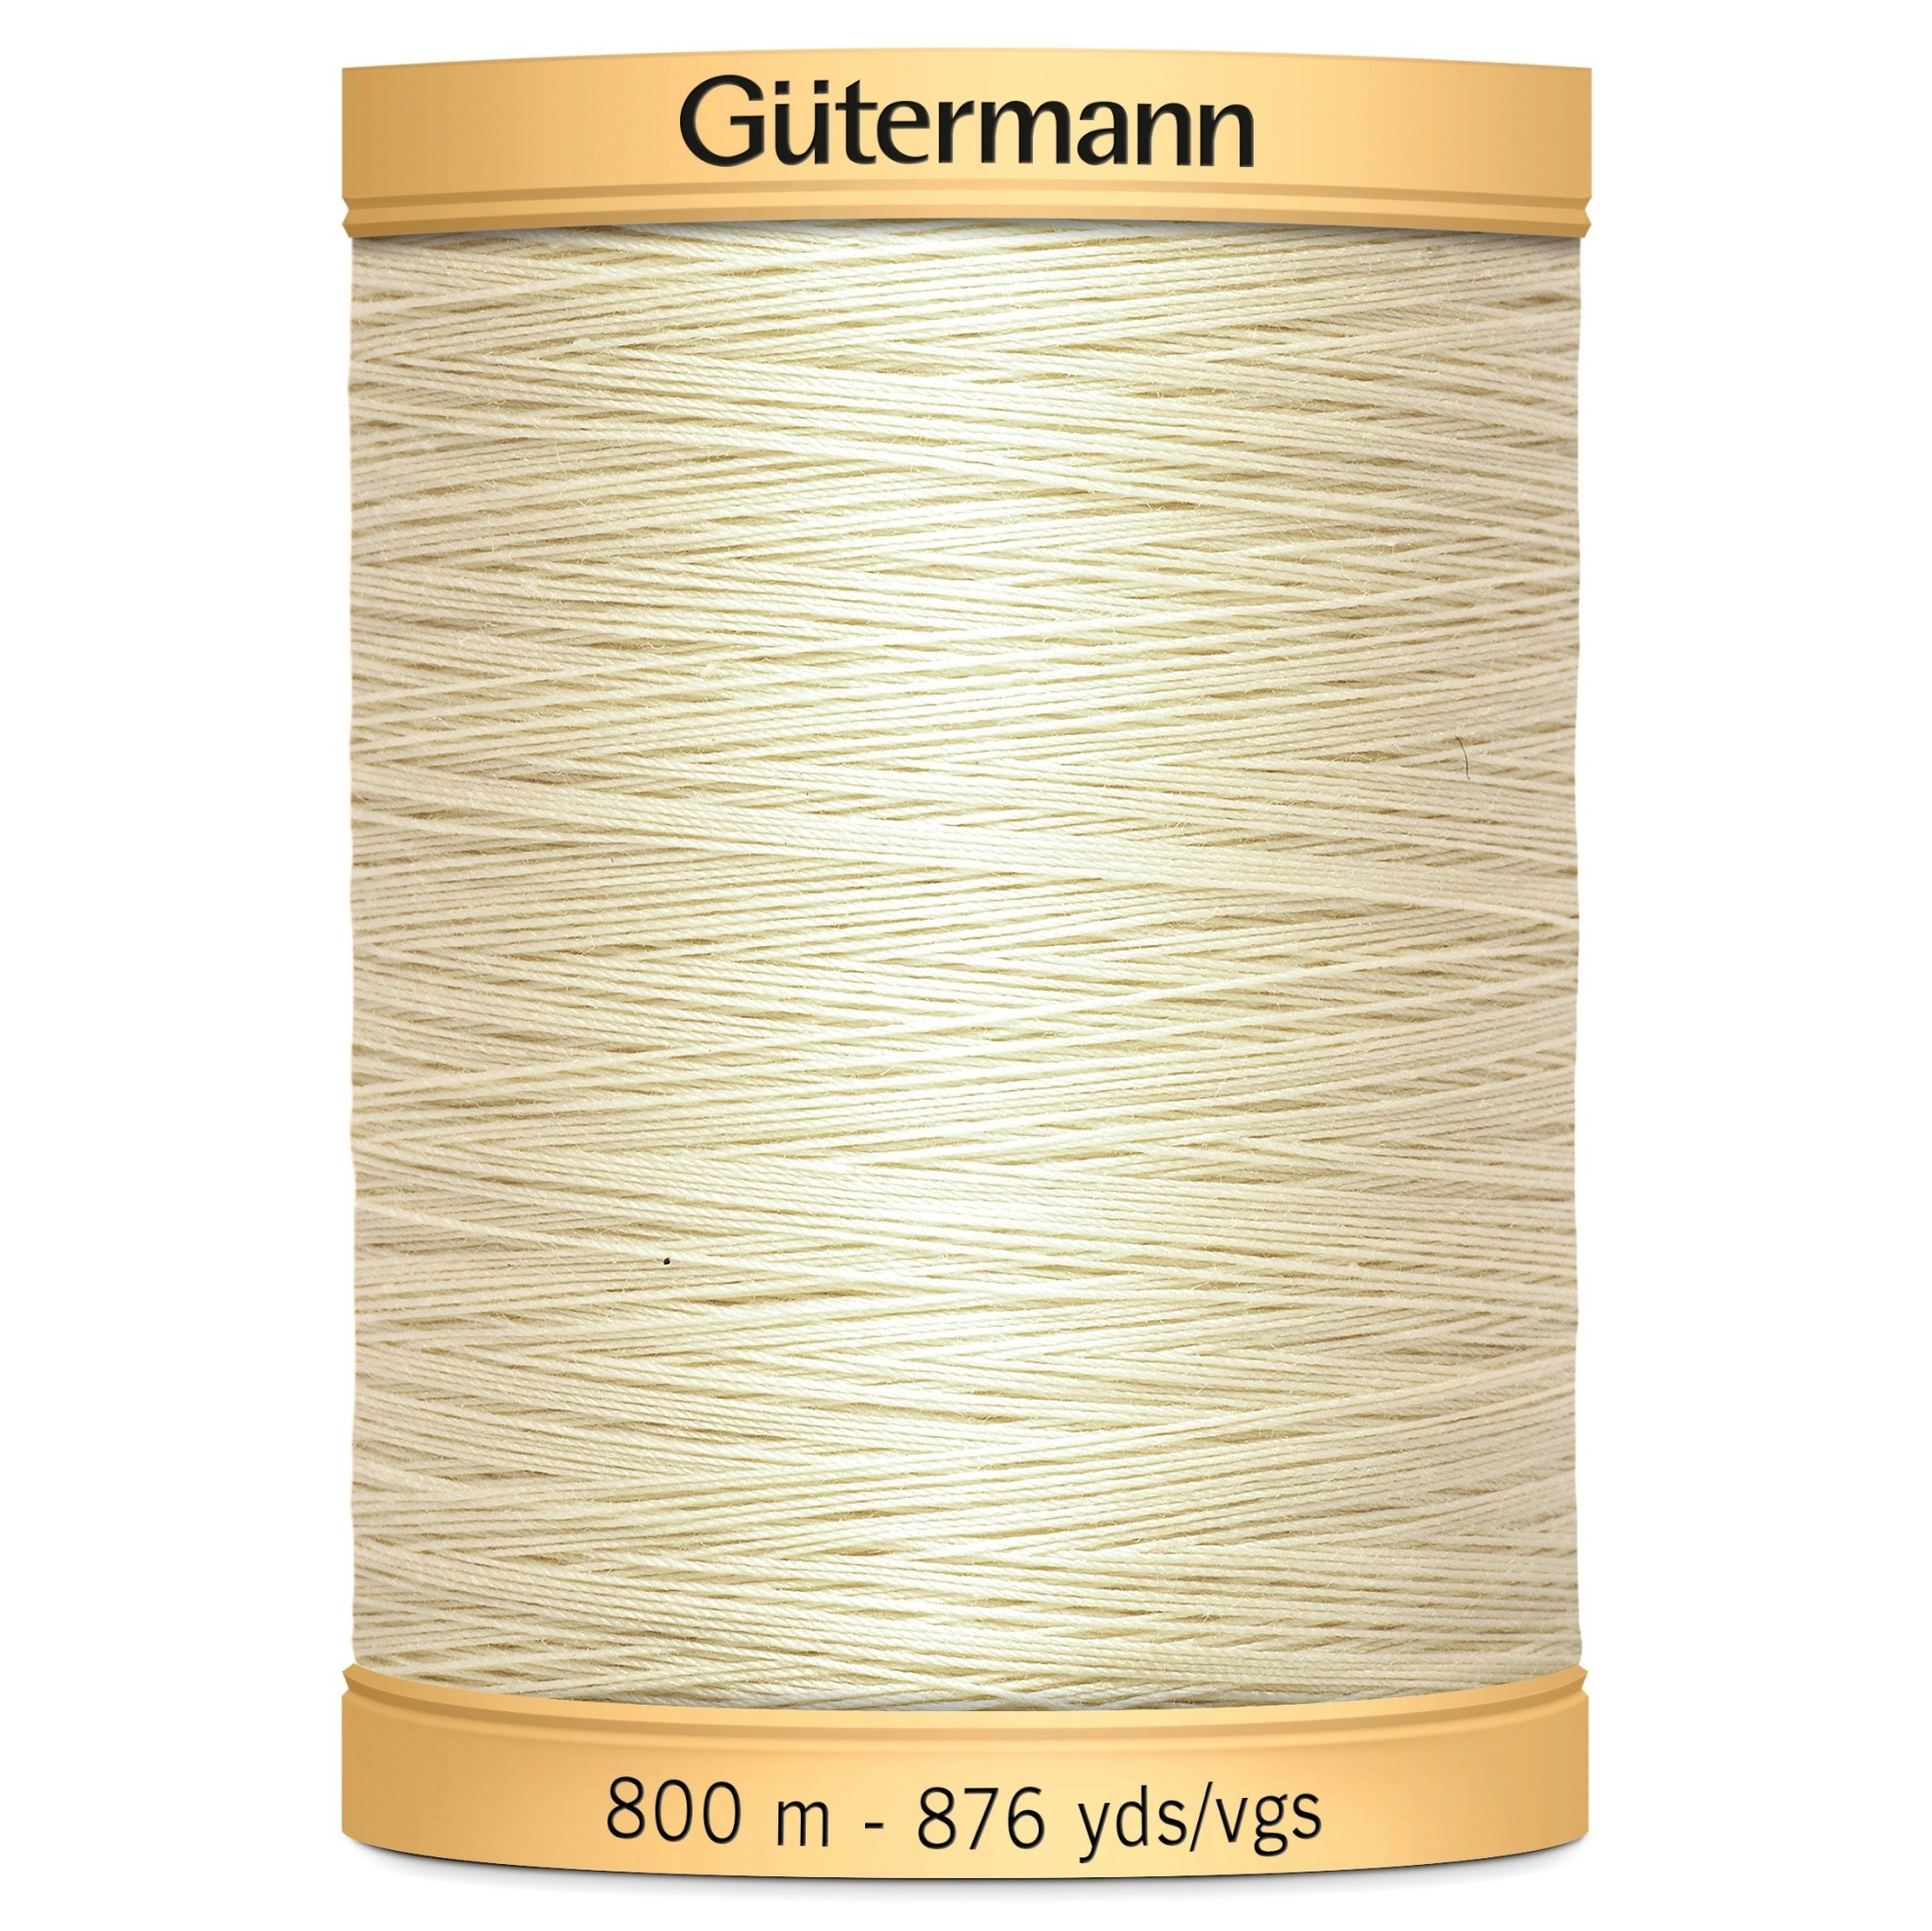 GUTERMANN Col.0919 Gutermann Cotton 800m Light Cream